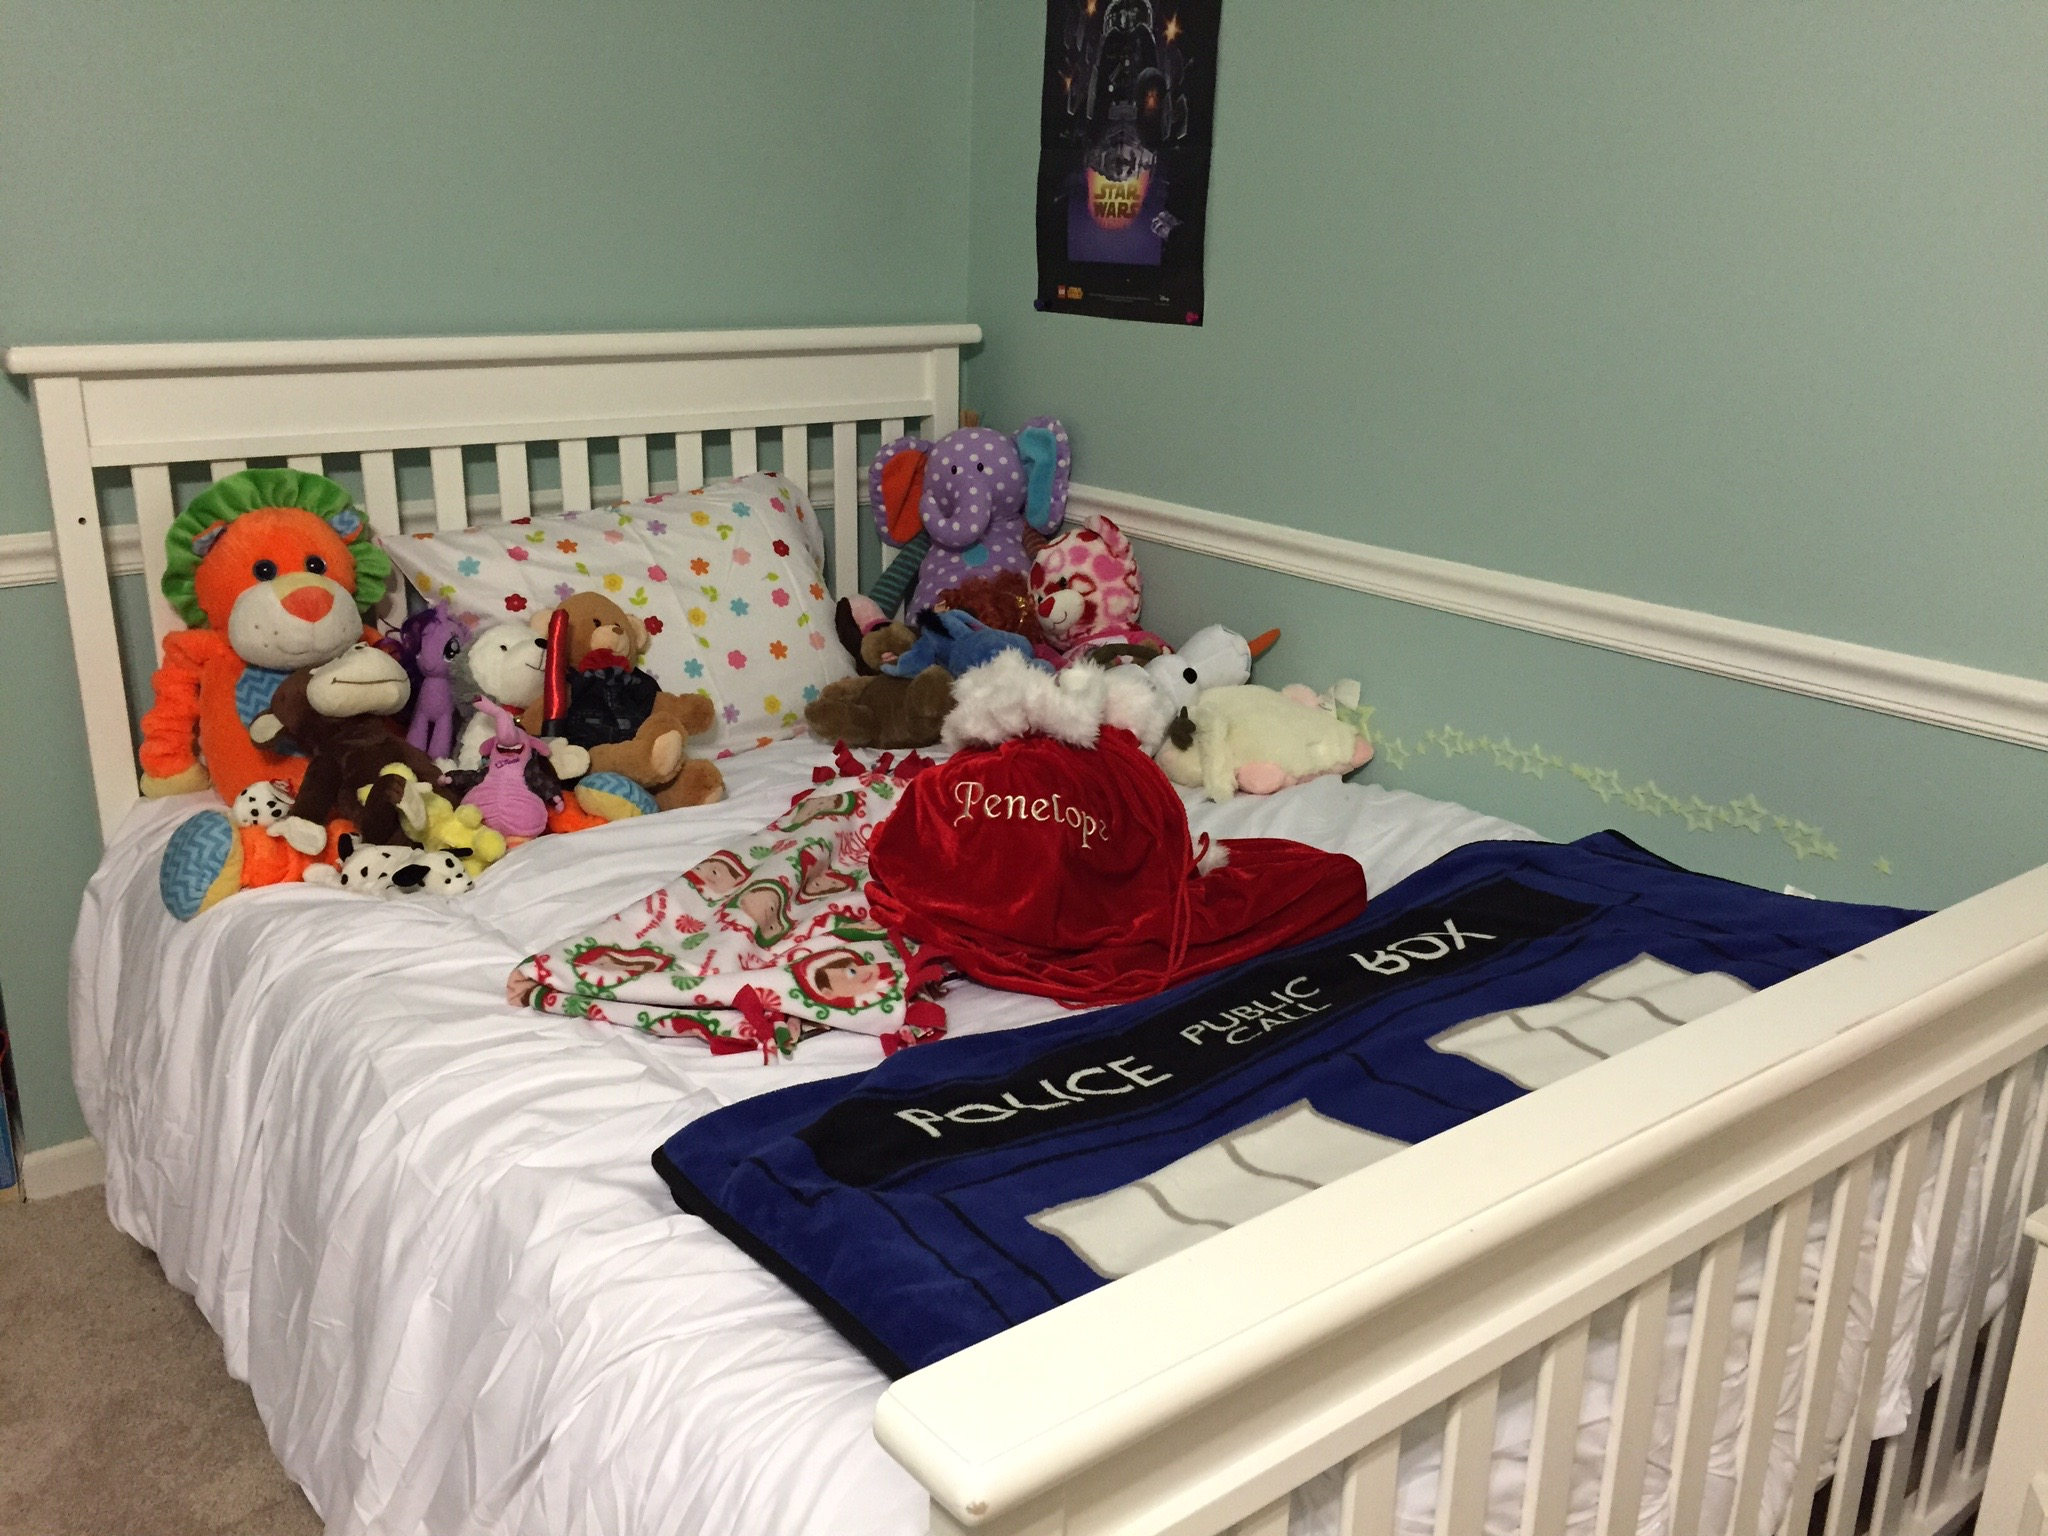 Penelope's new big girl bed with her Santa Sack in the middle